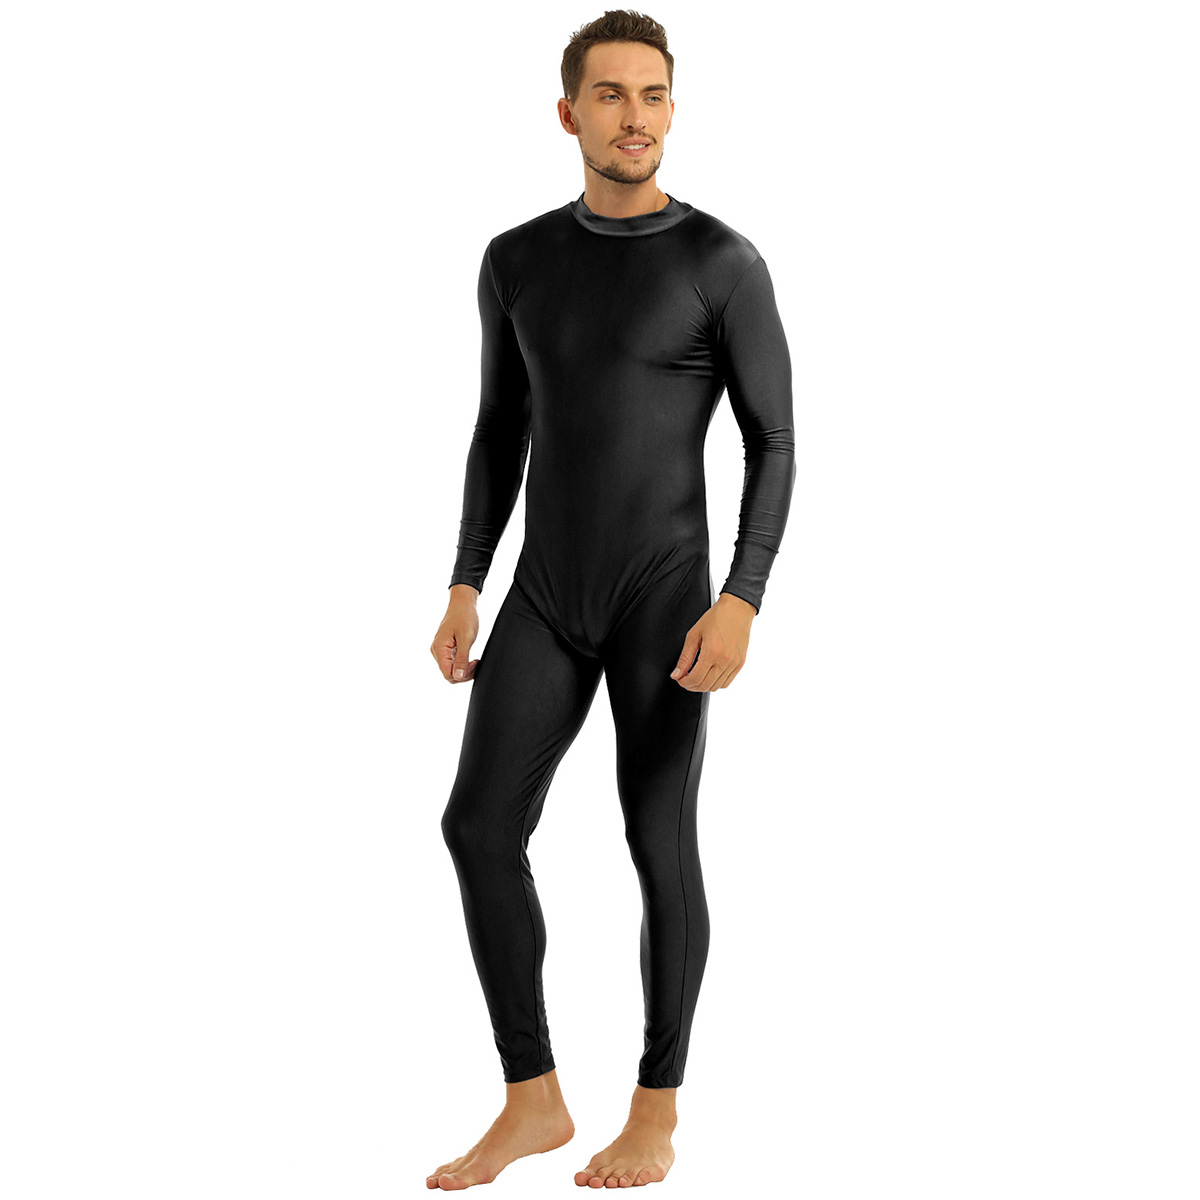 Mens Well Fit One Piece Leotards Long Sleeves Skinny Full-body Catsuit Adult Lycra Dancewear Bodysuit Gymnastics Workout Unitard 15